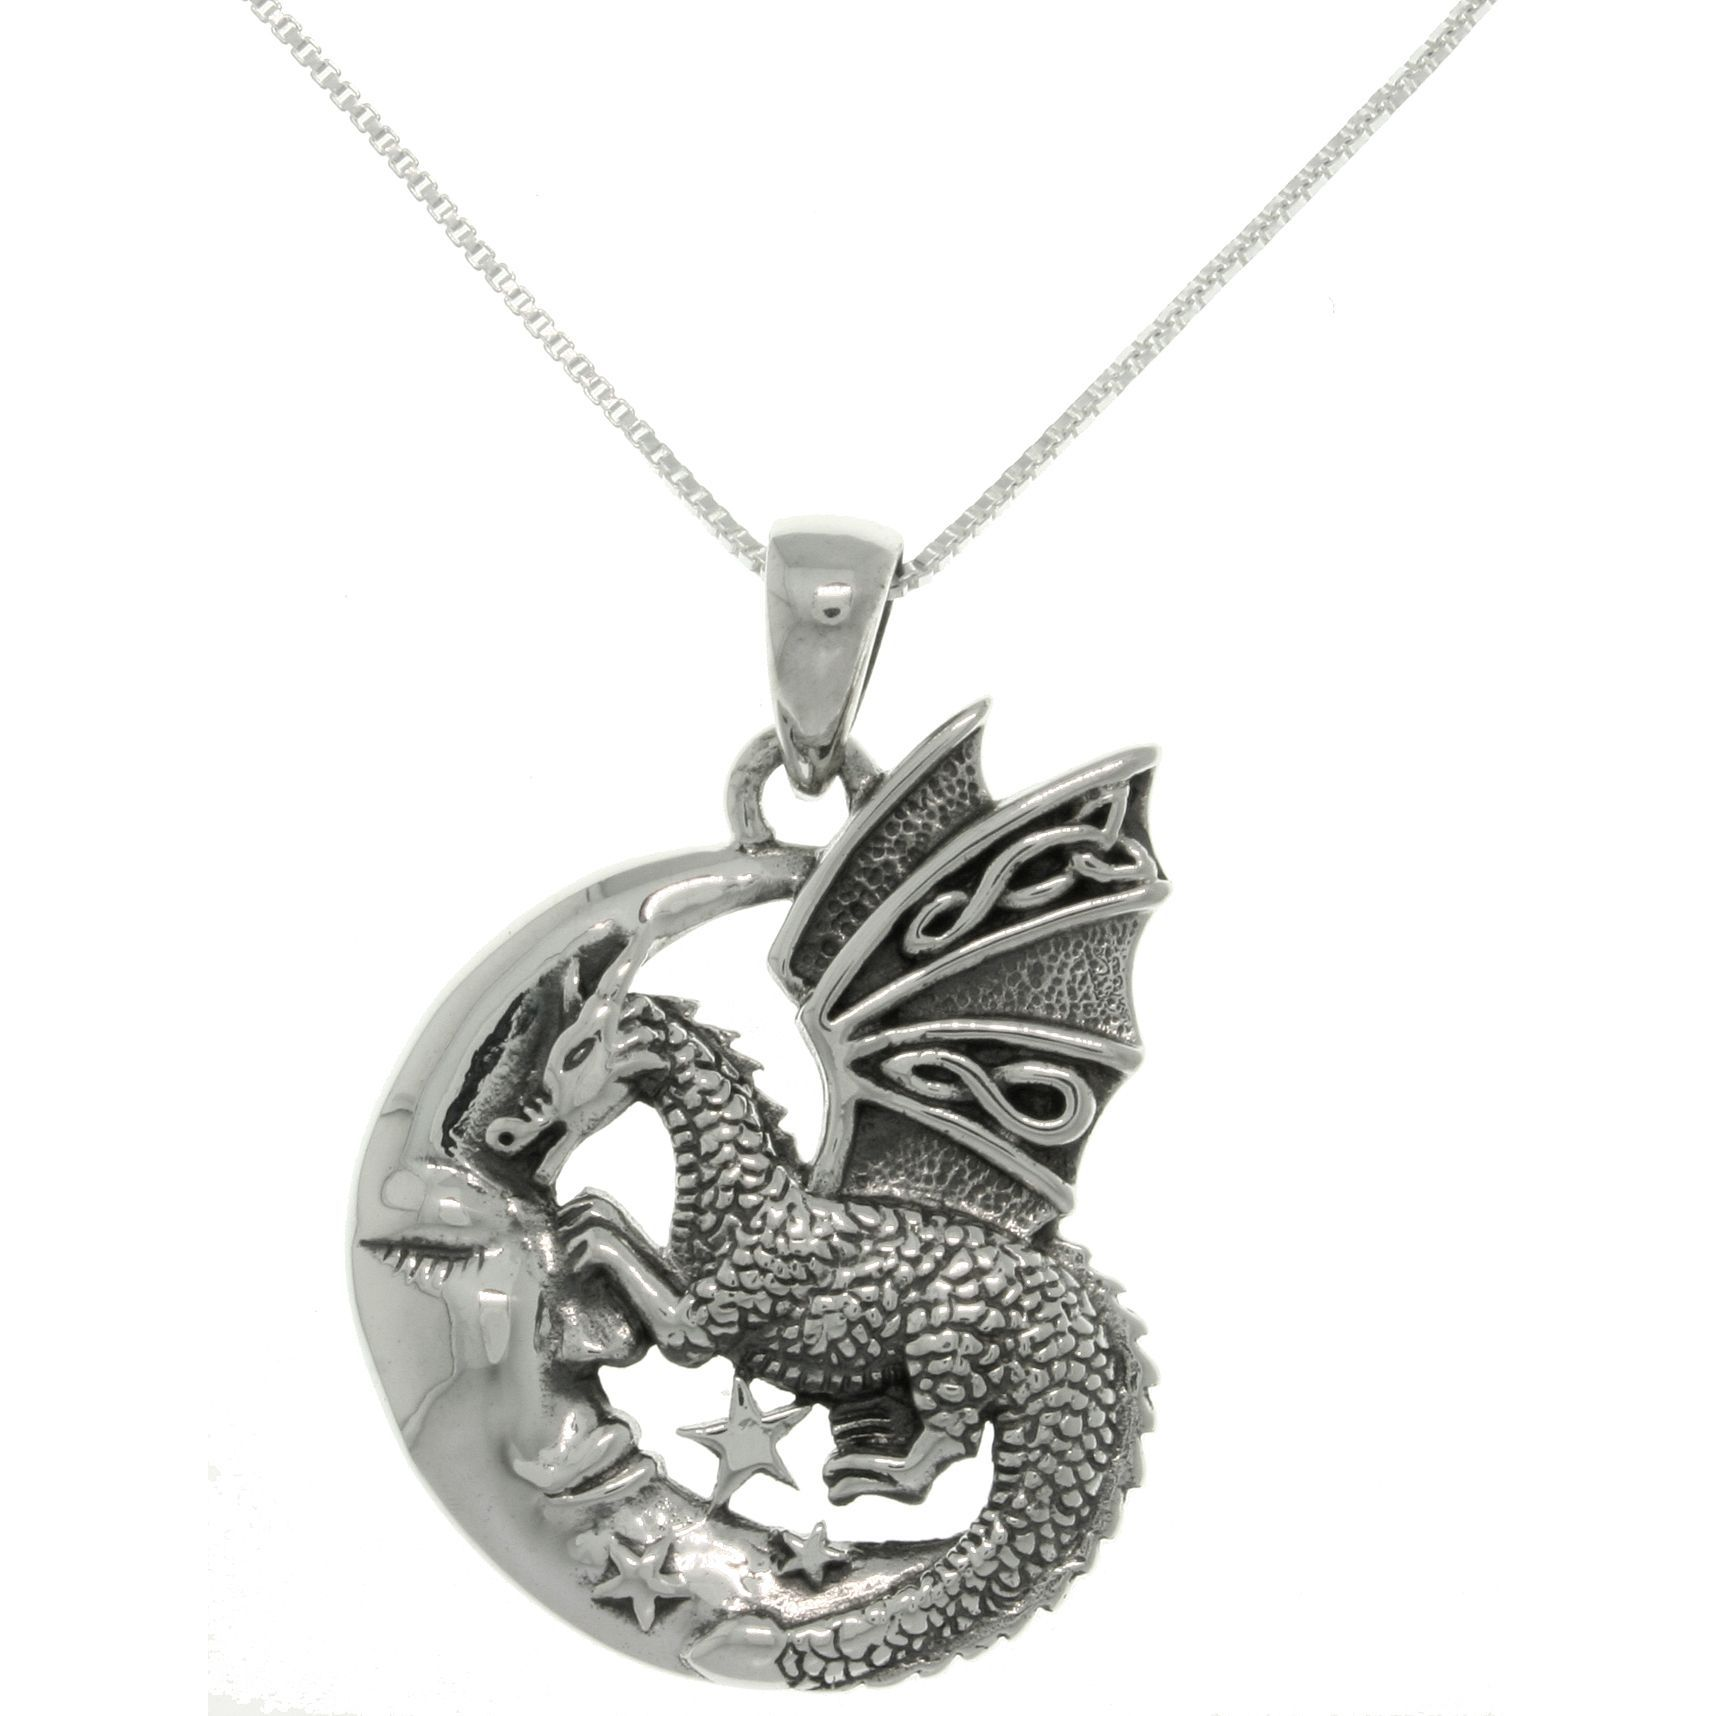 Crafted of fine .925 sterling silver, this pendant from the Carolina Glamour Collection features a dragon and a sleeping crescent moon. This necklace includes an 18-inch box chain with spring ring closure.